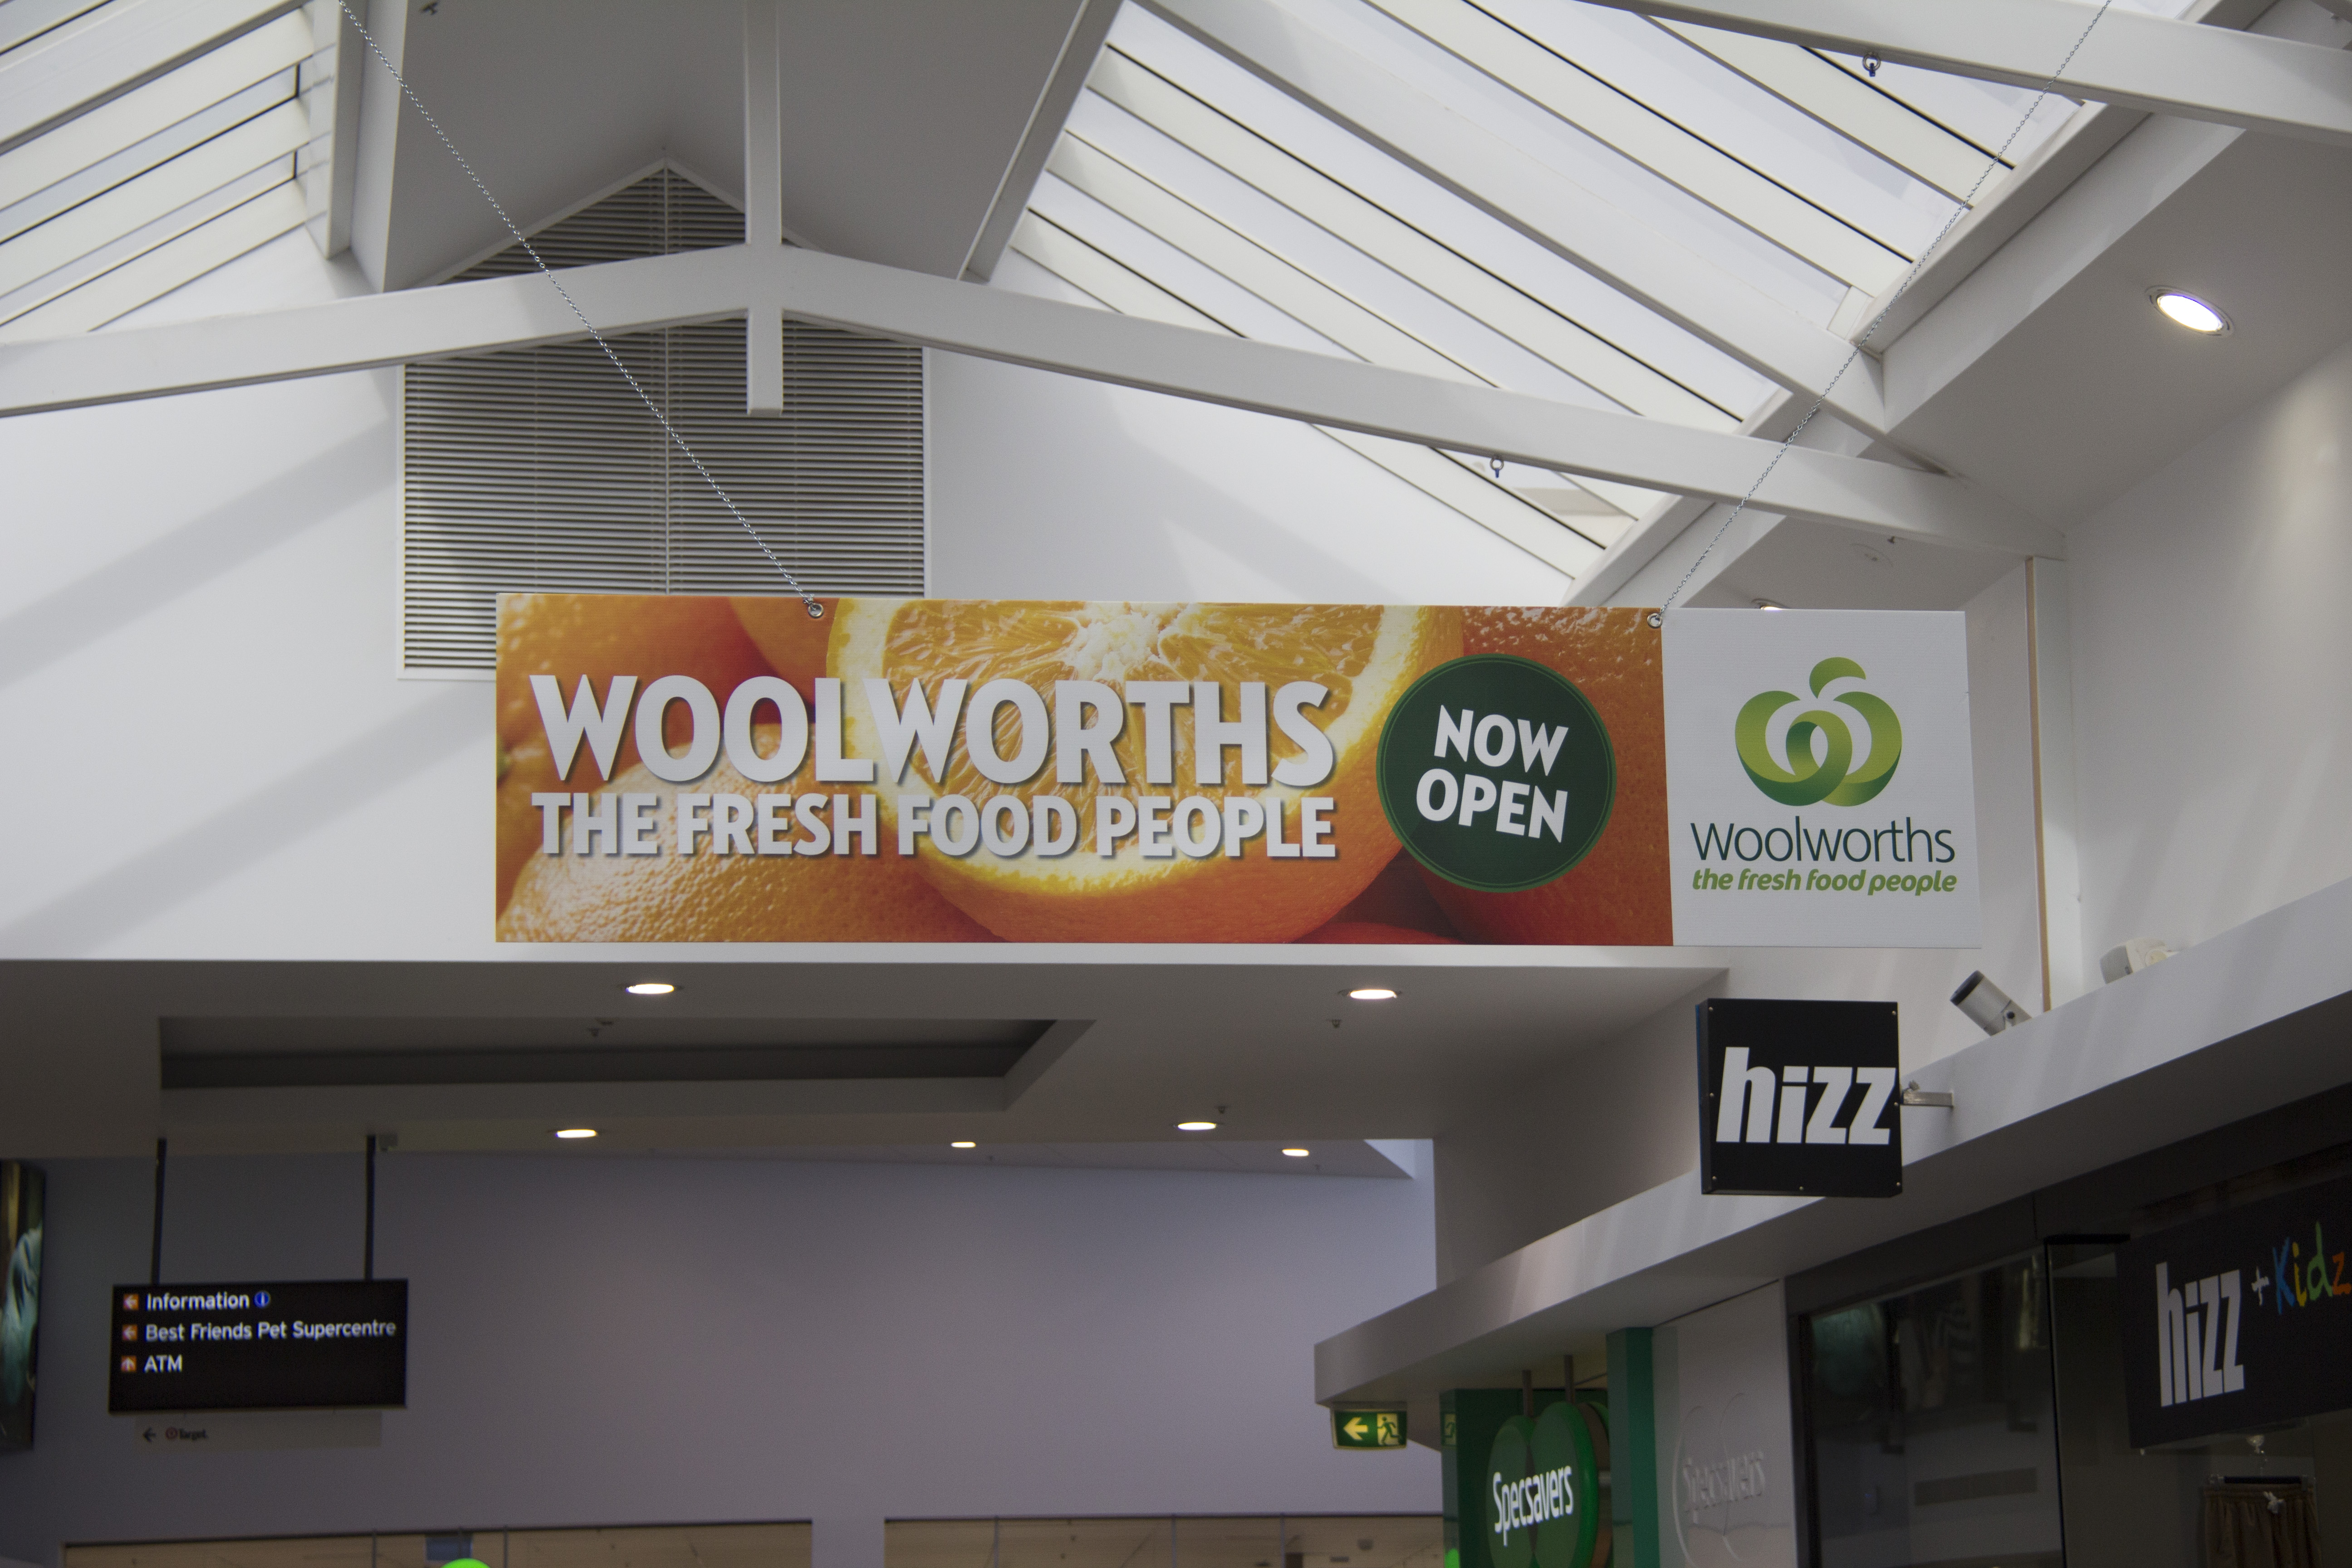 Corflute printed signs for Woolworths